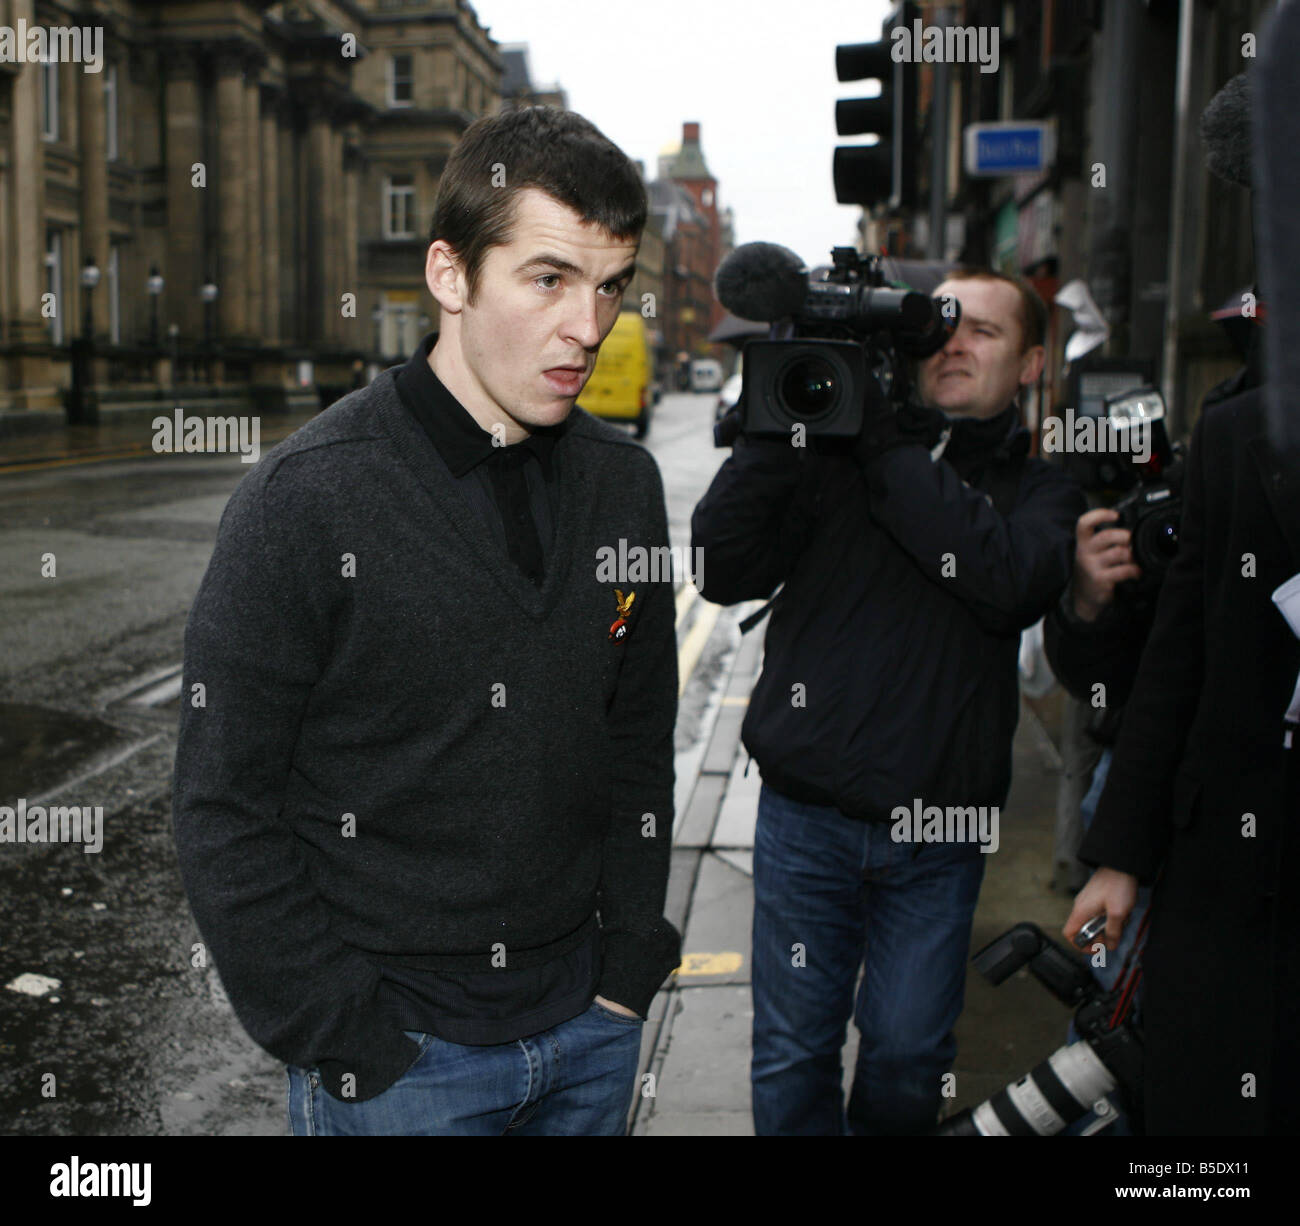 Newcastle United footballer Joey Barton arrives at Liverpool Magistrates Court on assault charges He was later bailed - Stock Image